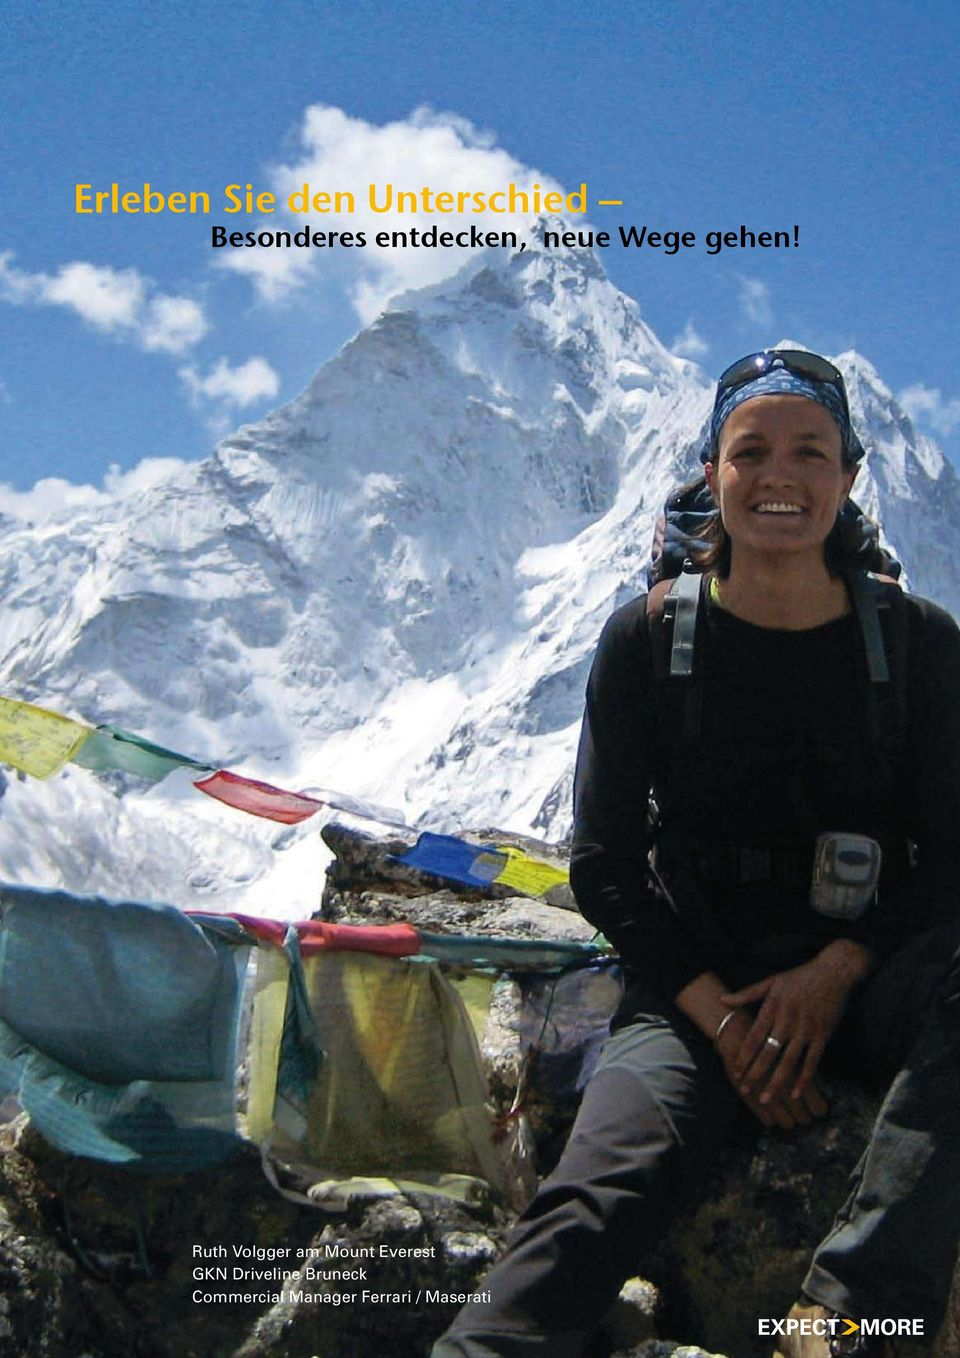 Ruth Volgger am Mount Everest GKN